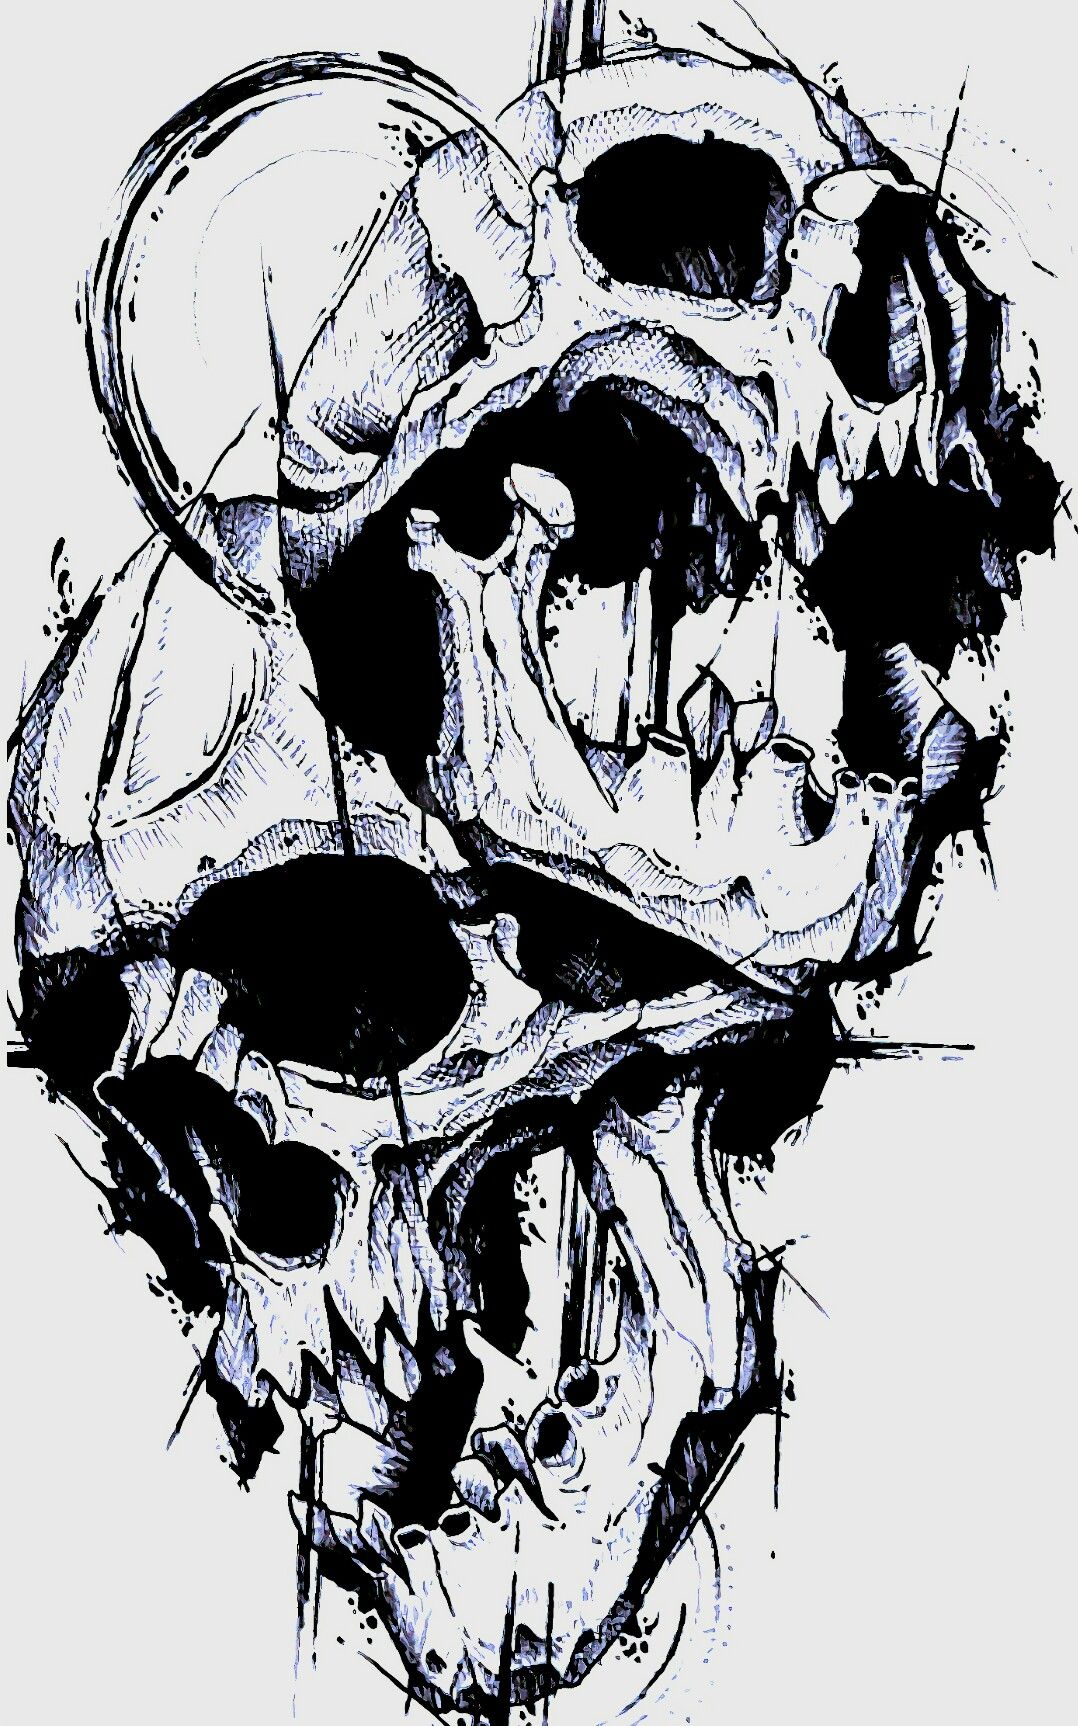 Pin By Onni Star On Tattoo Designs In 2020 Skull Art Skull Tattoo Design Tattoo Drawings